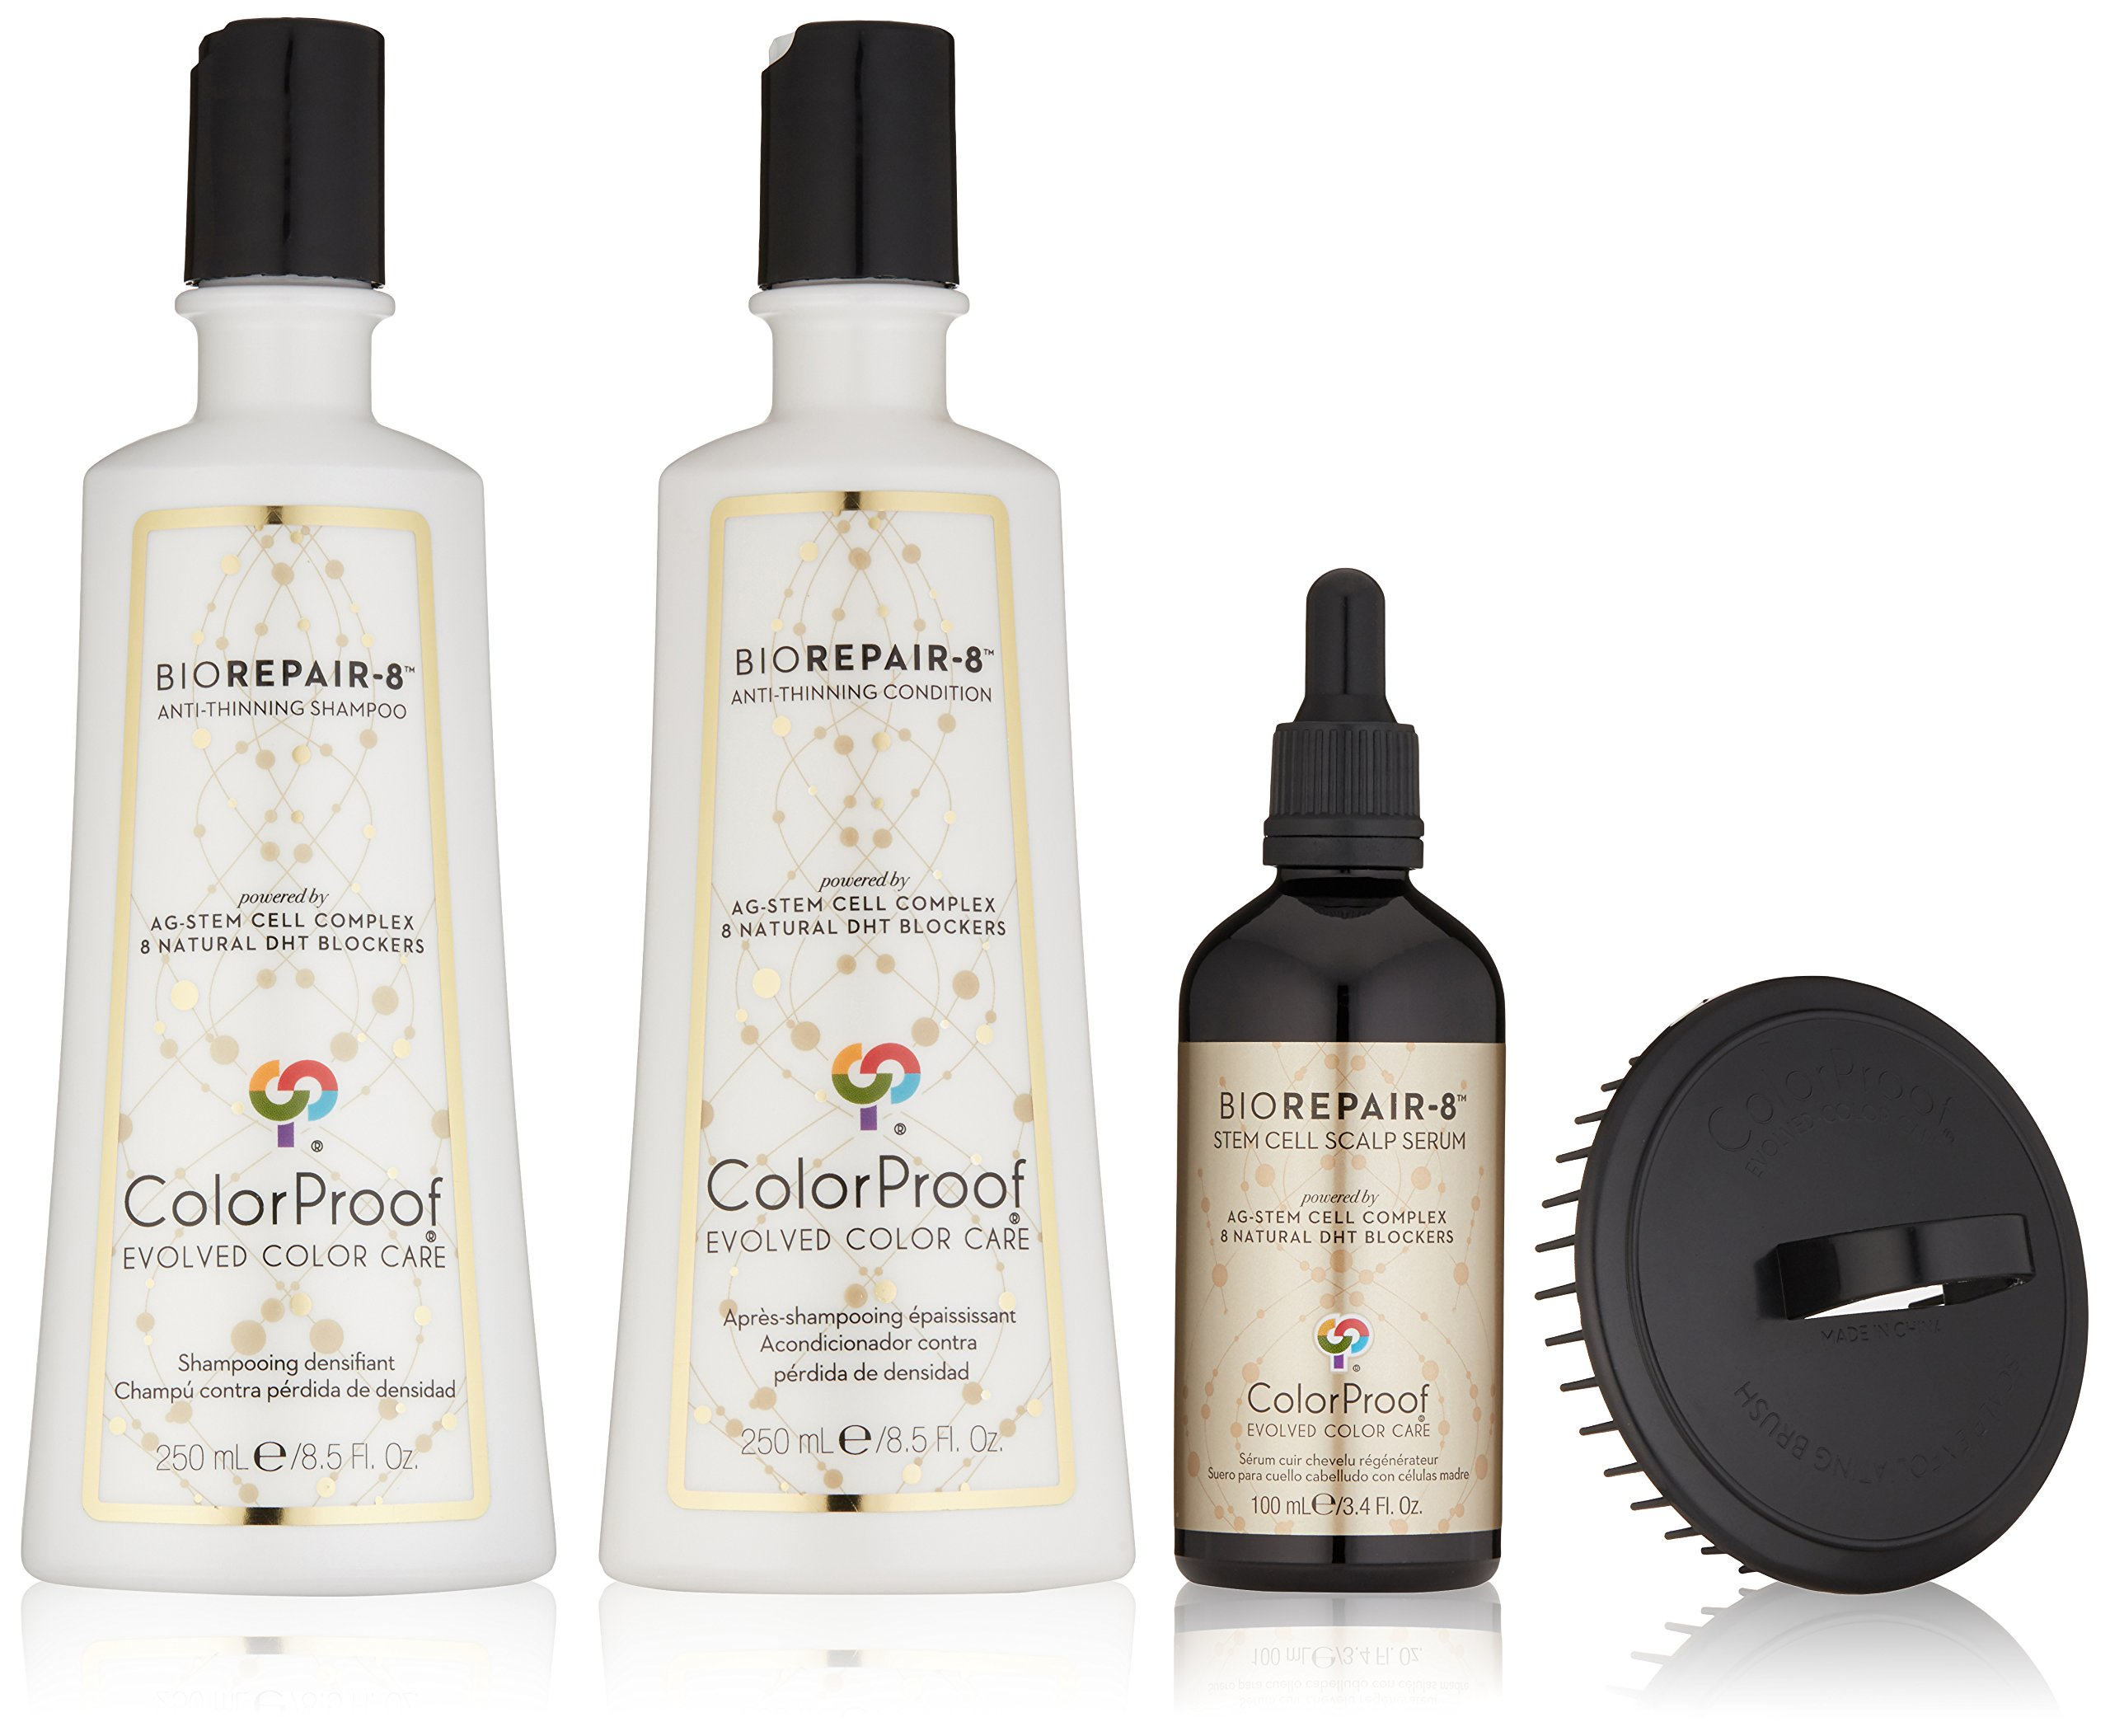 ColorProof Evolved Color Care Biorepair-8 Anti-Aging Scalp & Hair Therapy Kit